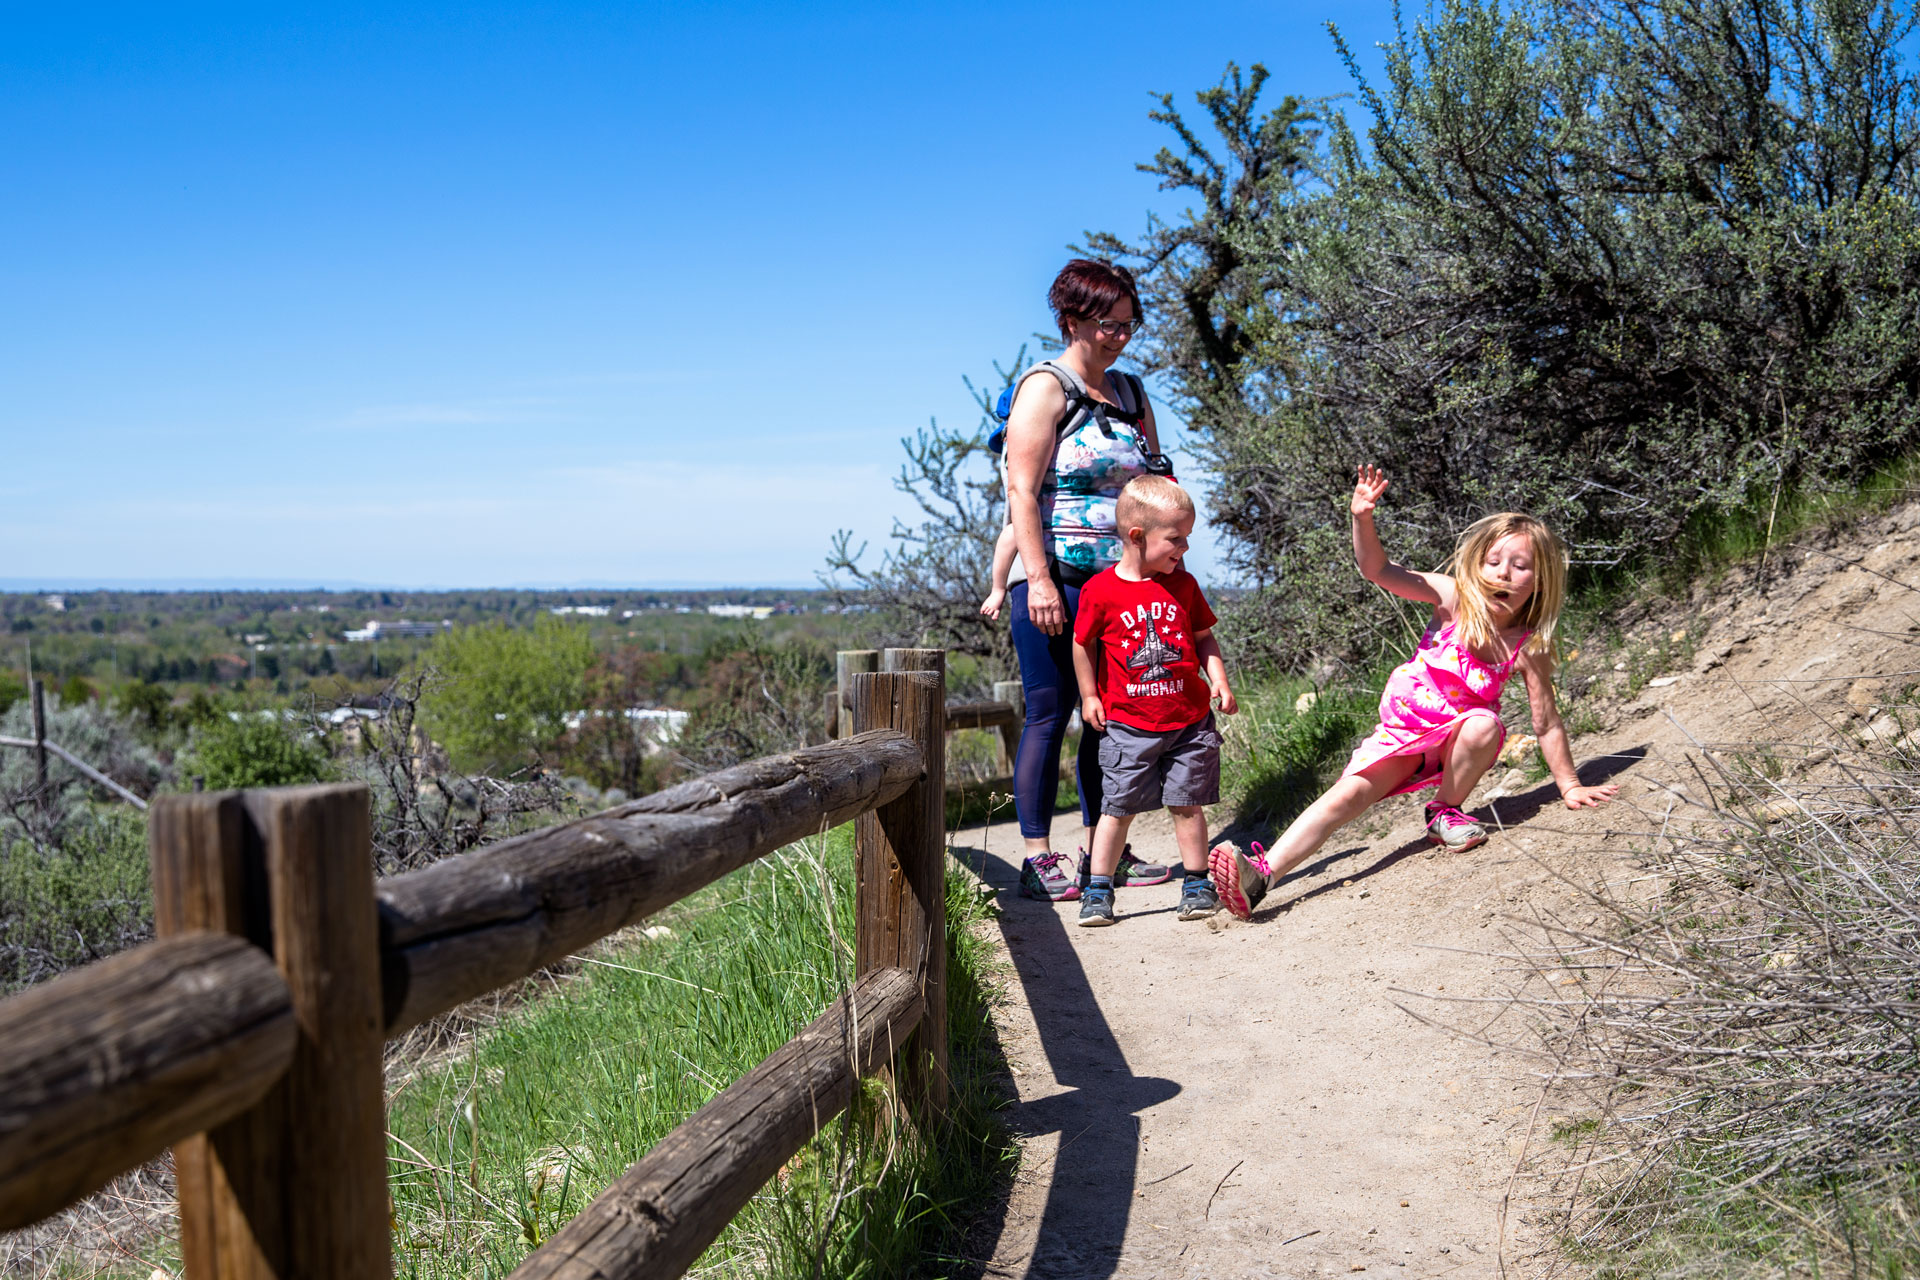 Mom and kids hiking up the trail over the city and daughter slipping on the dirt in surprise